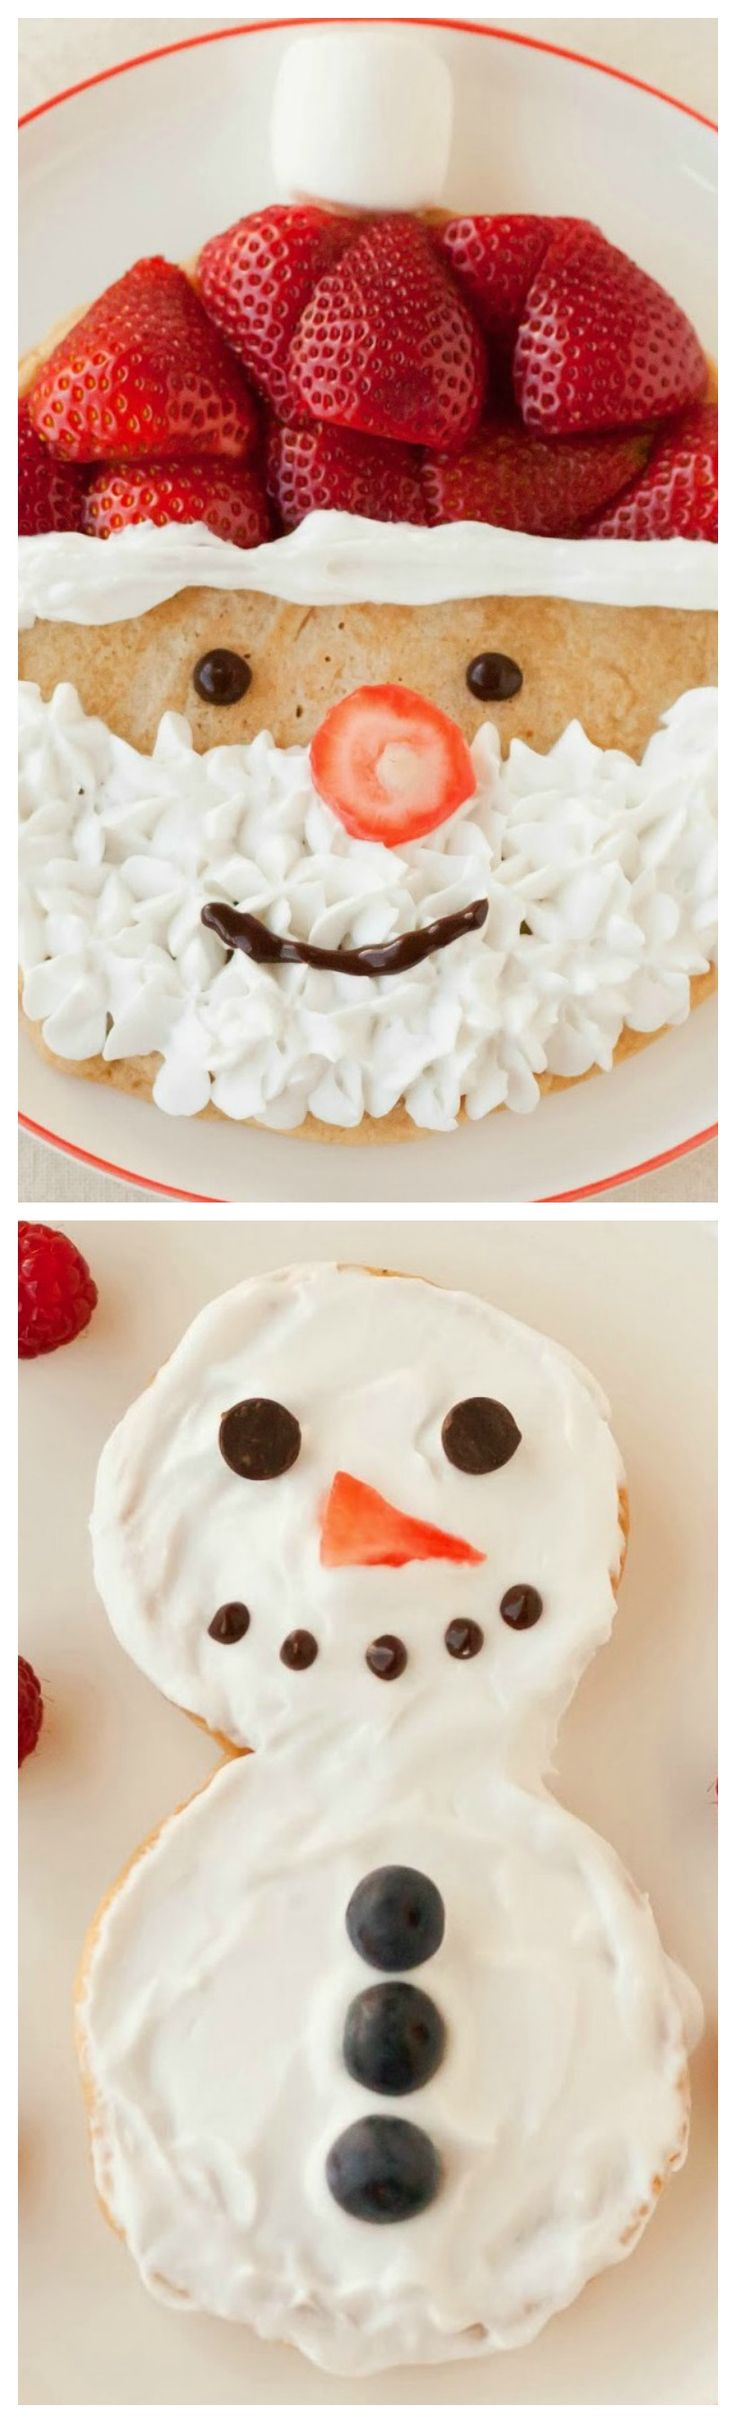 How To Make Santa Claus and Snowman Pancakes ~ Fun and happy breakfast!